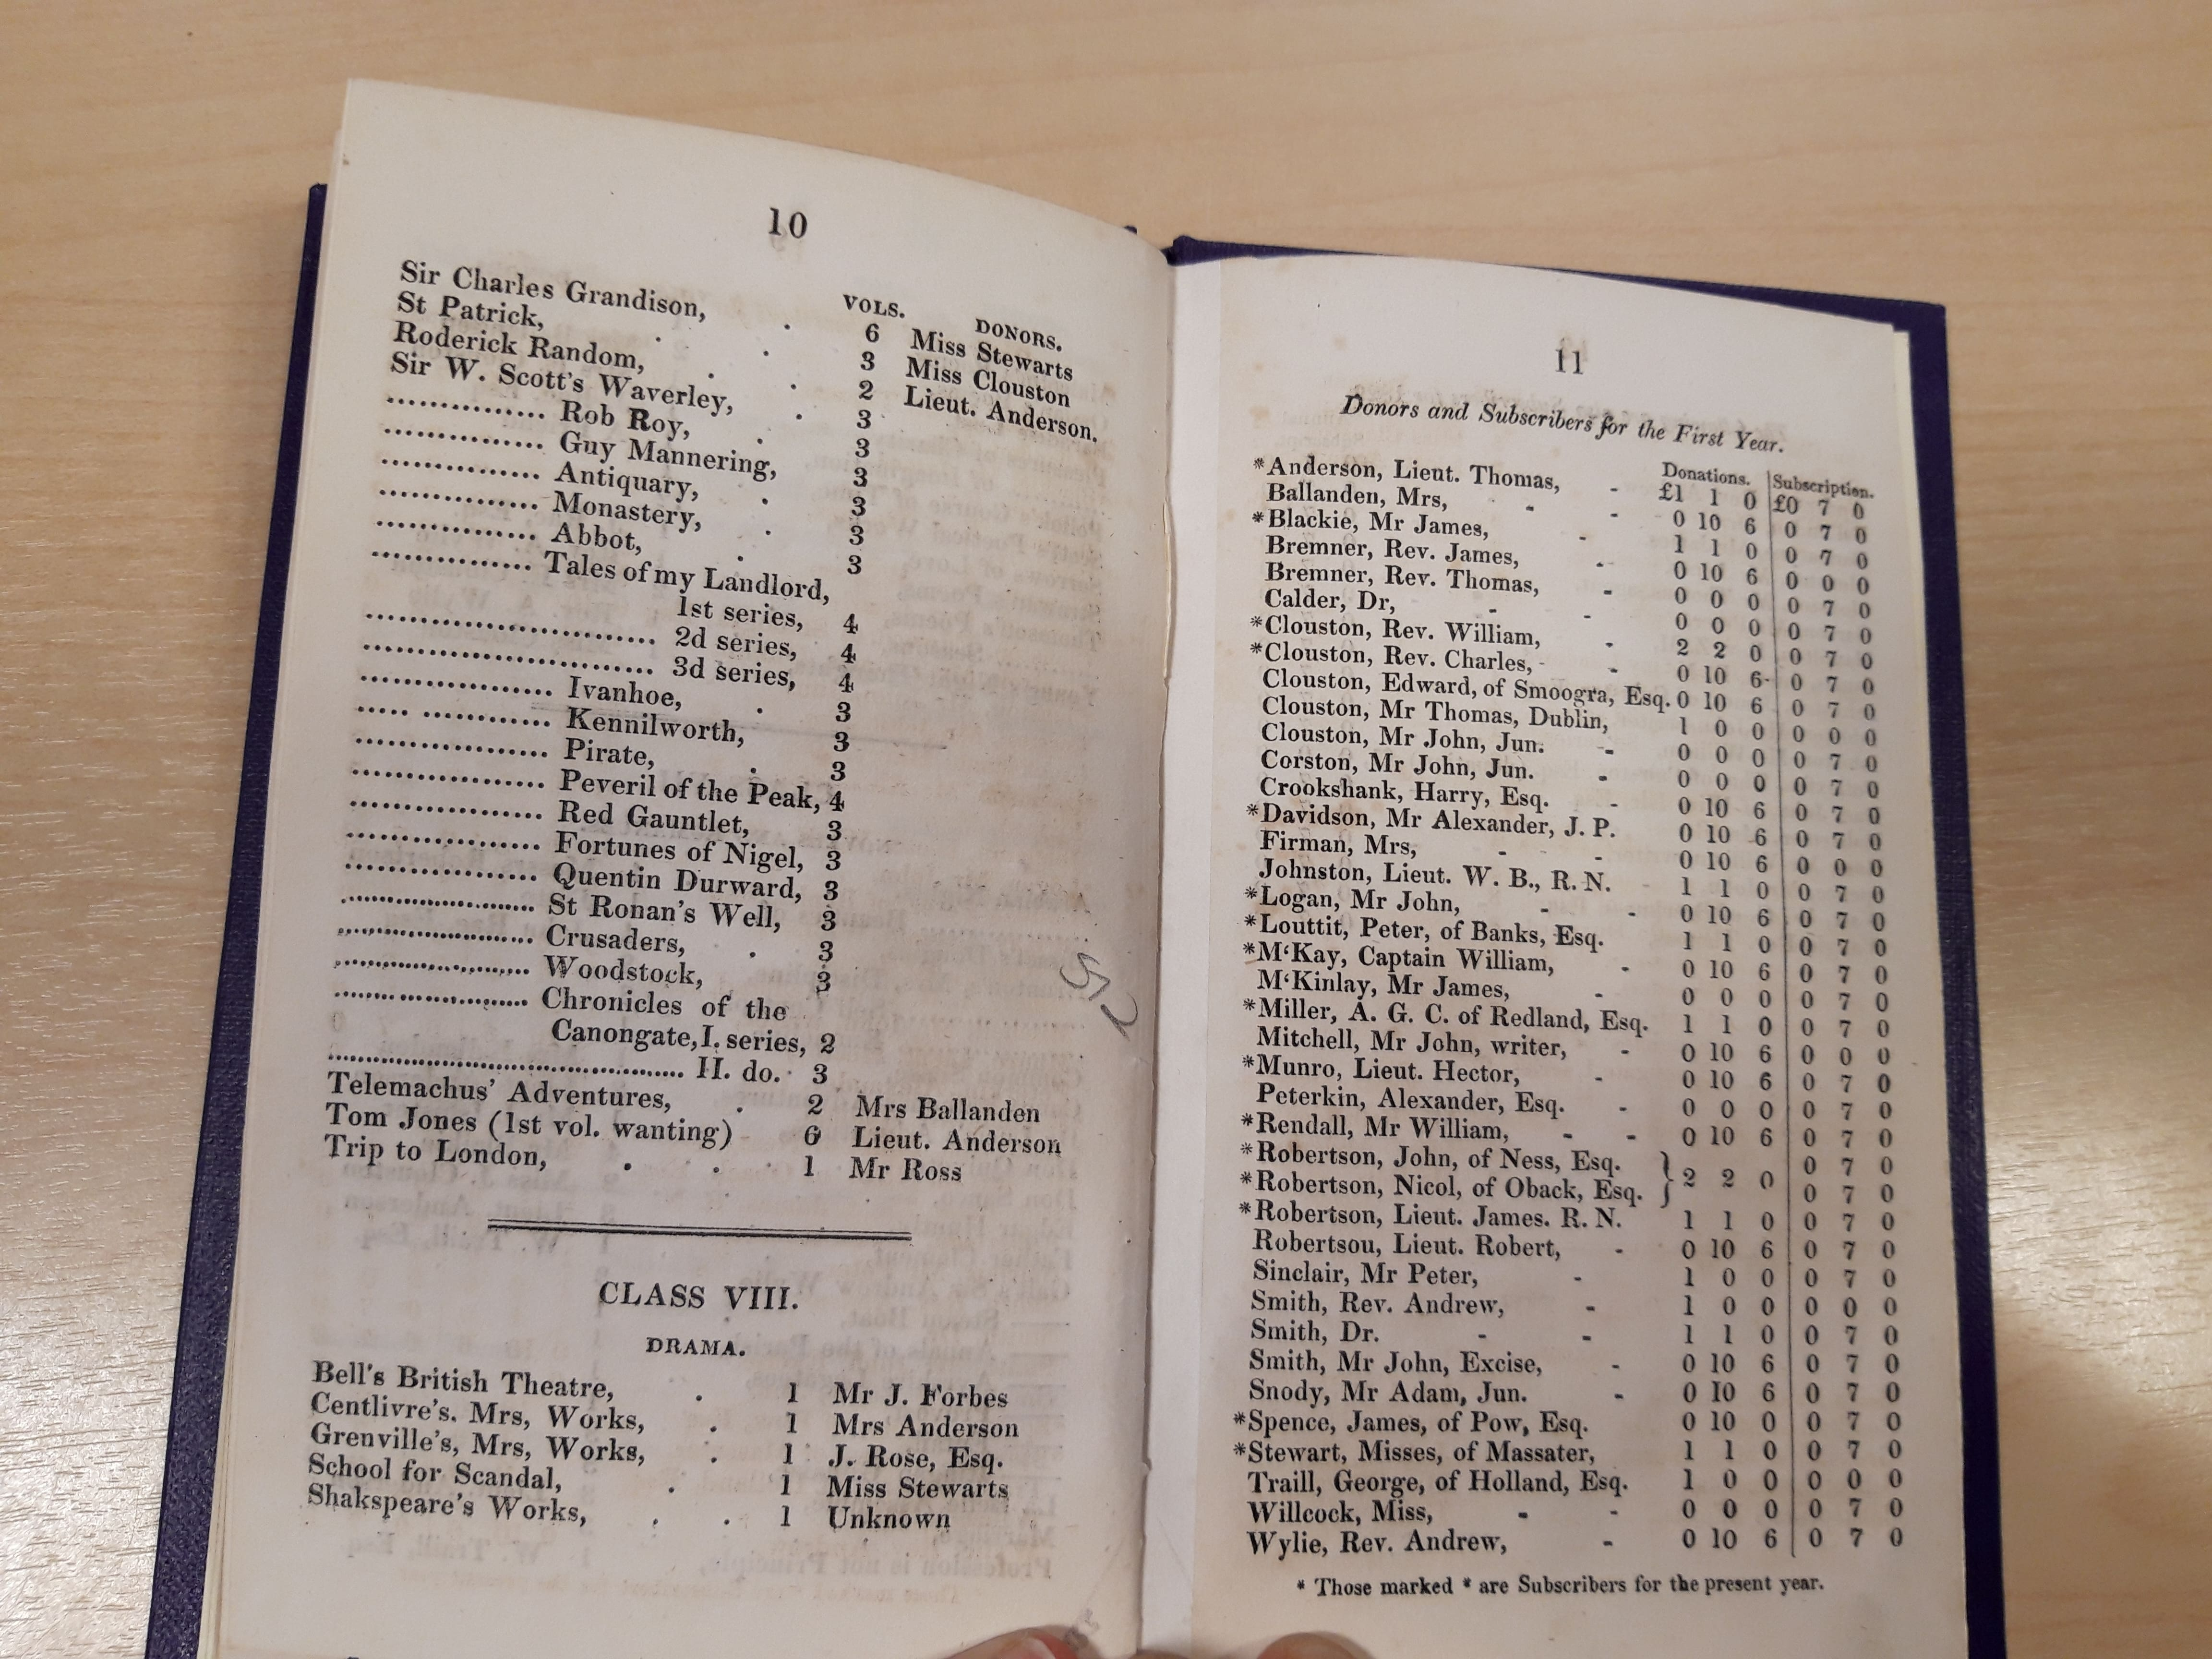 Image of Stromness Library catalogue showing entry for Sir Charles Grandison